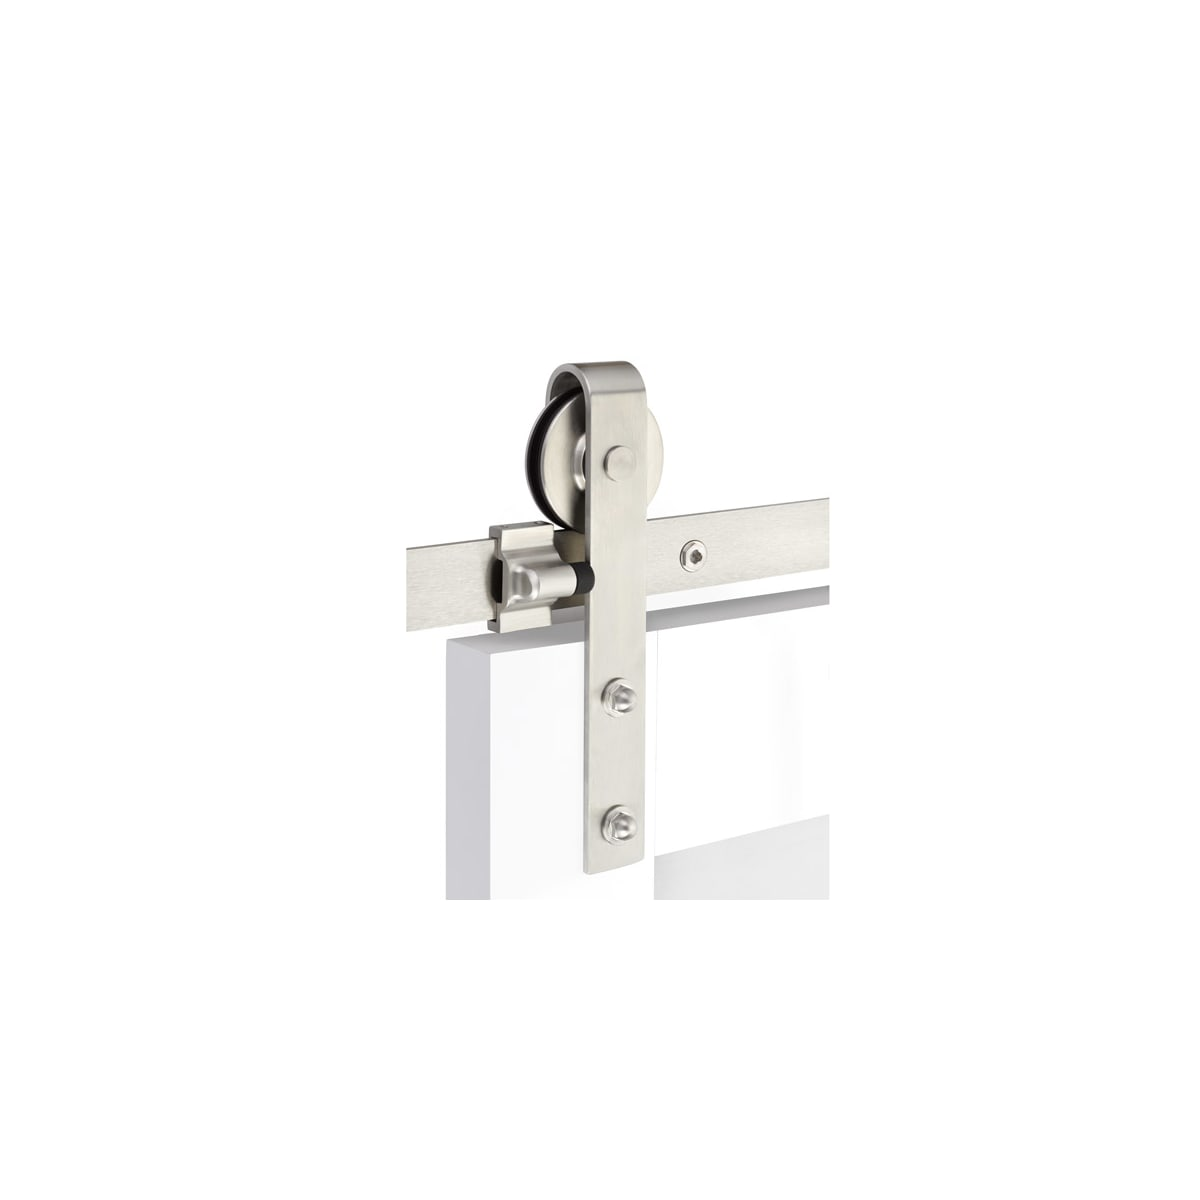 Emtek Classic 60 Inch Face Mount Barn Door Hardware Set - Includes Track, Hangers, and Matching Hardware